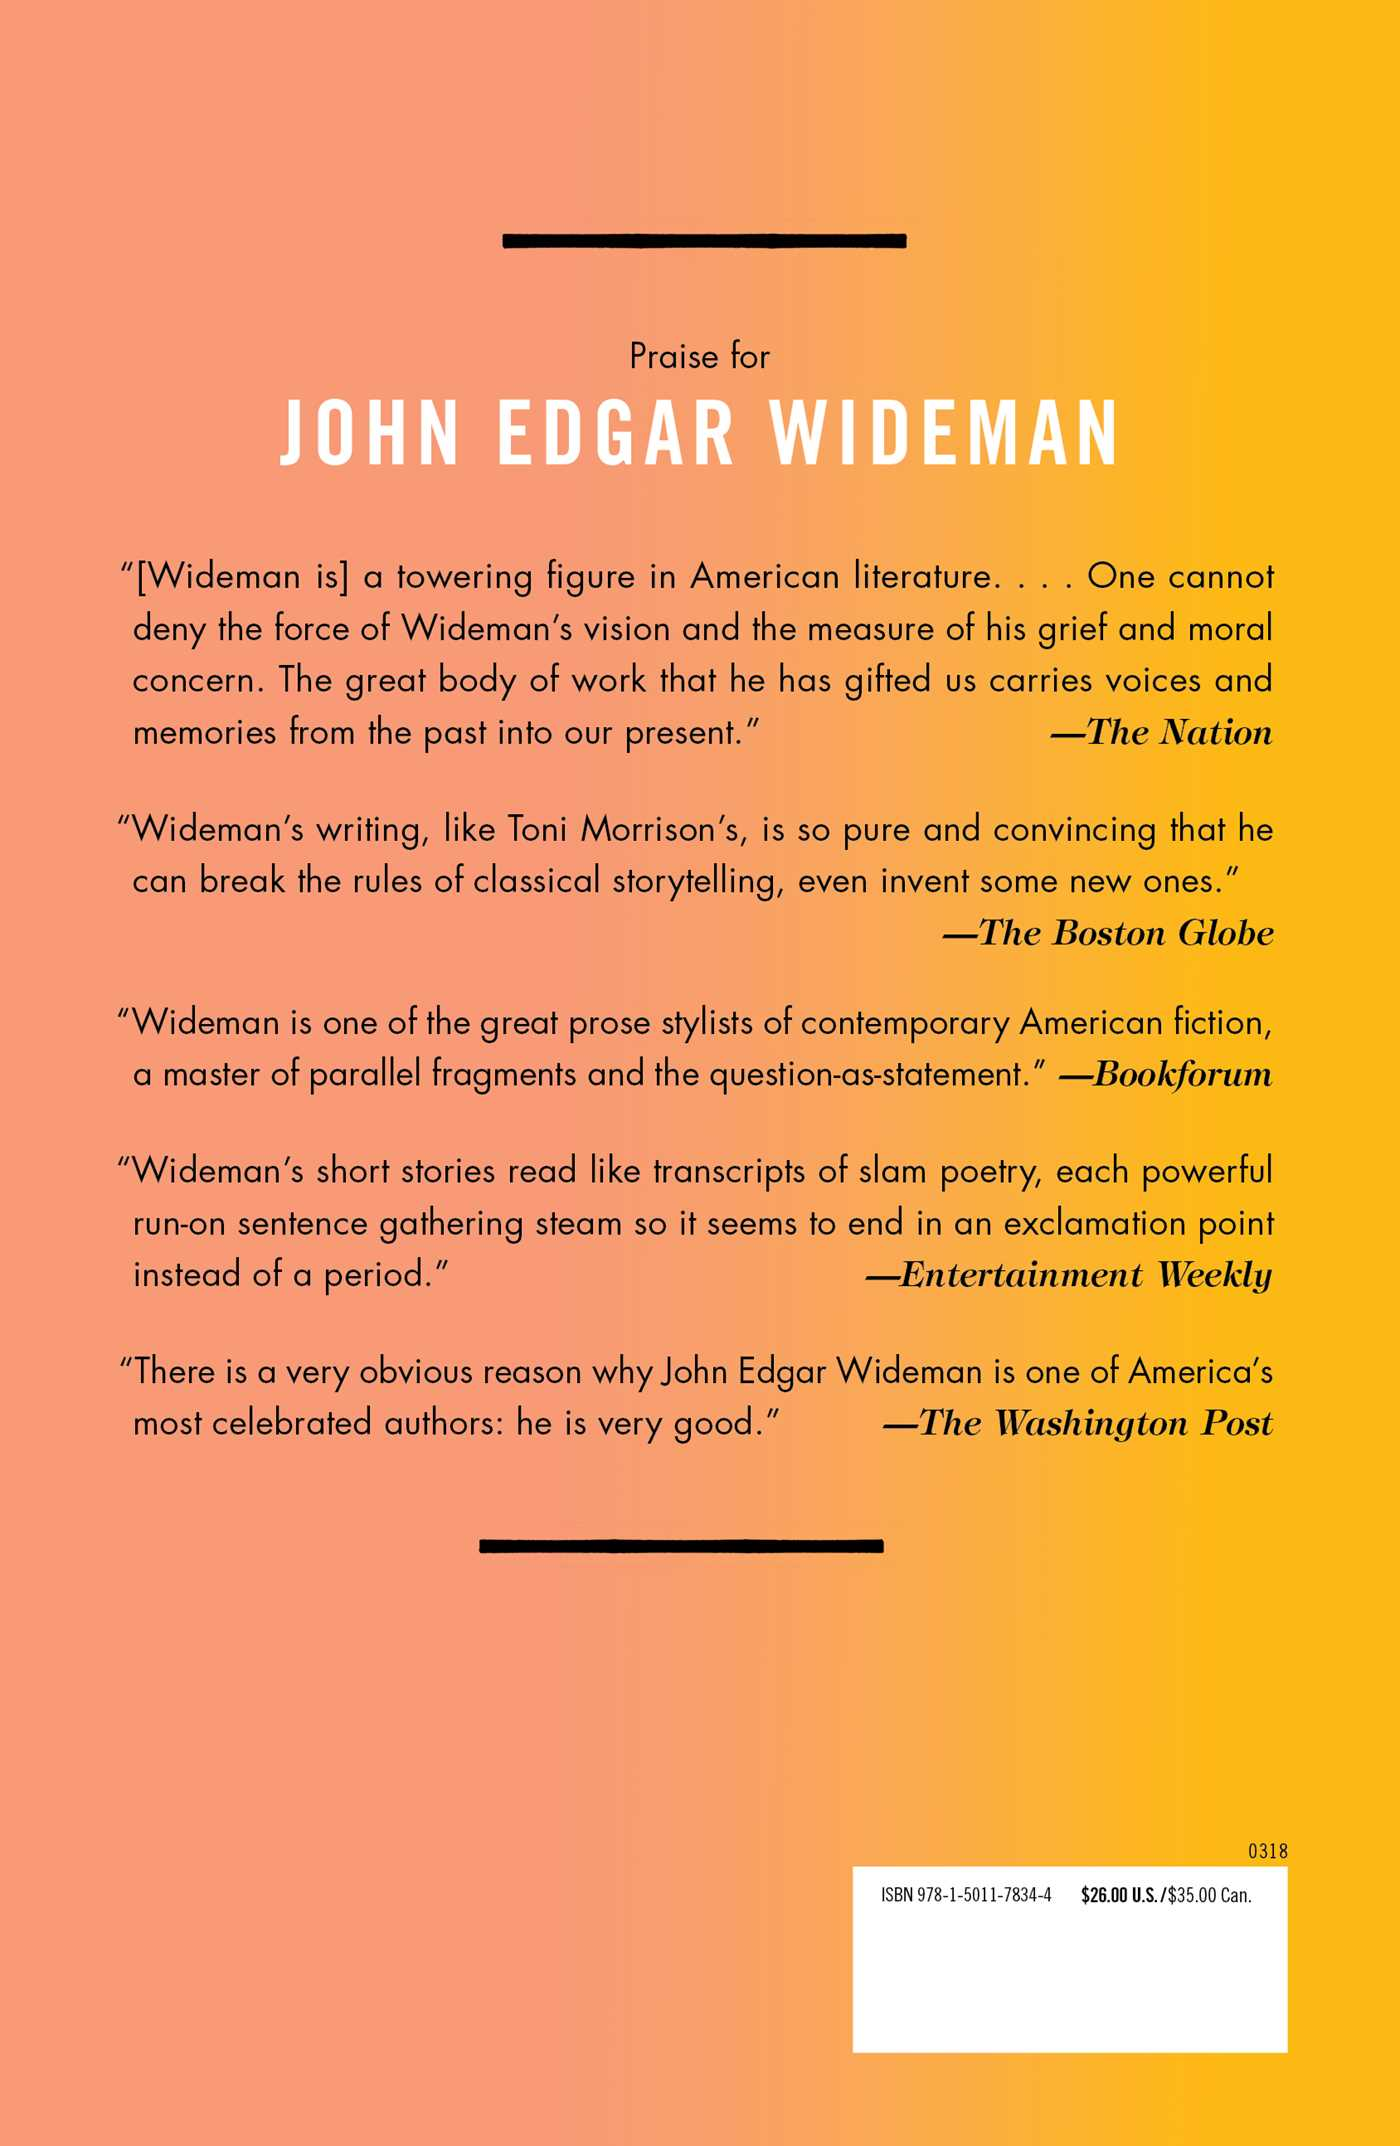 a review of john edgar widemans story our time John edgar wideman 1941– american novelist, short story writer, nonfiction writer, and critic the following entry presents an overview of wideman's career through 1997.